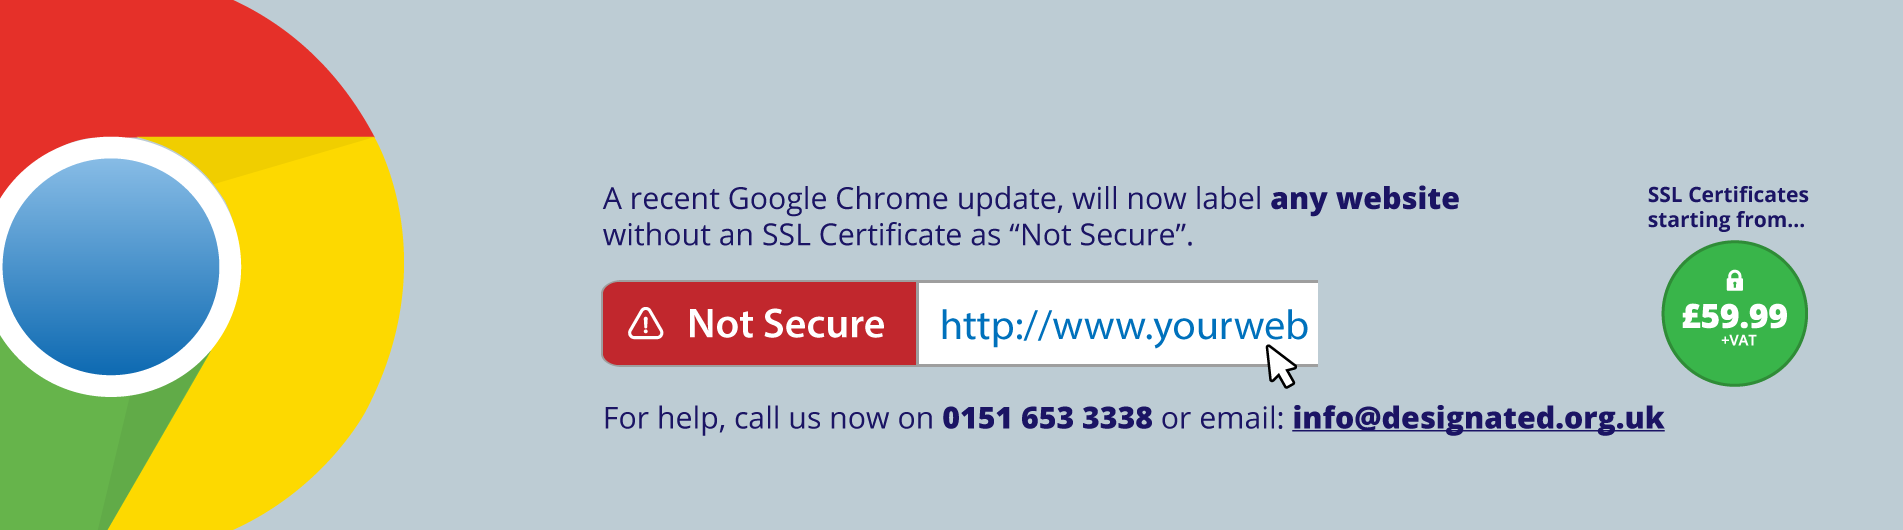 Your website without an SSL Certificate...